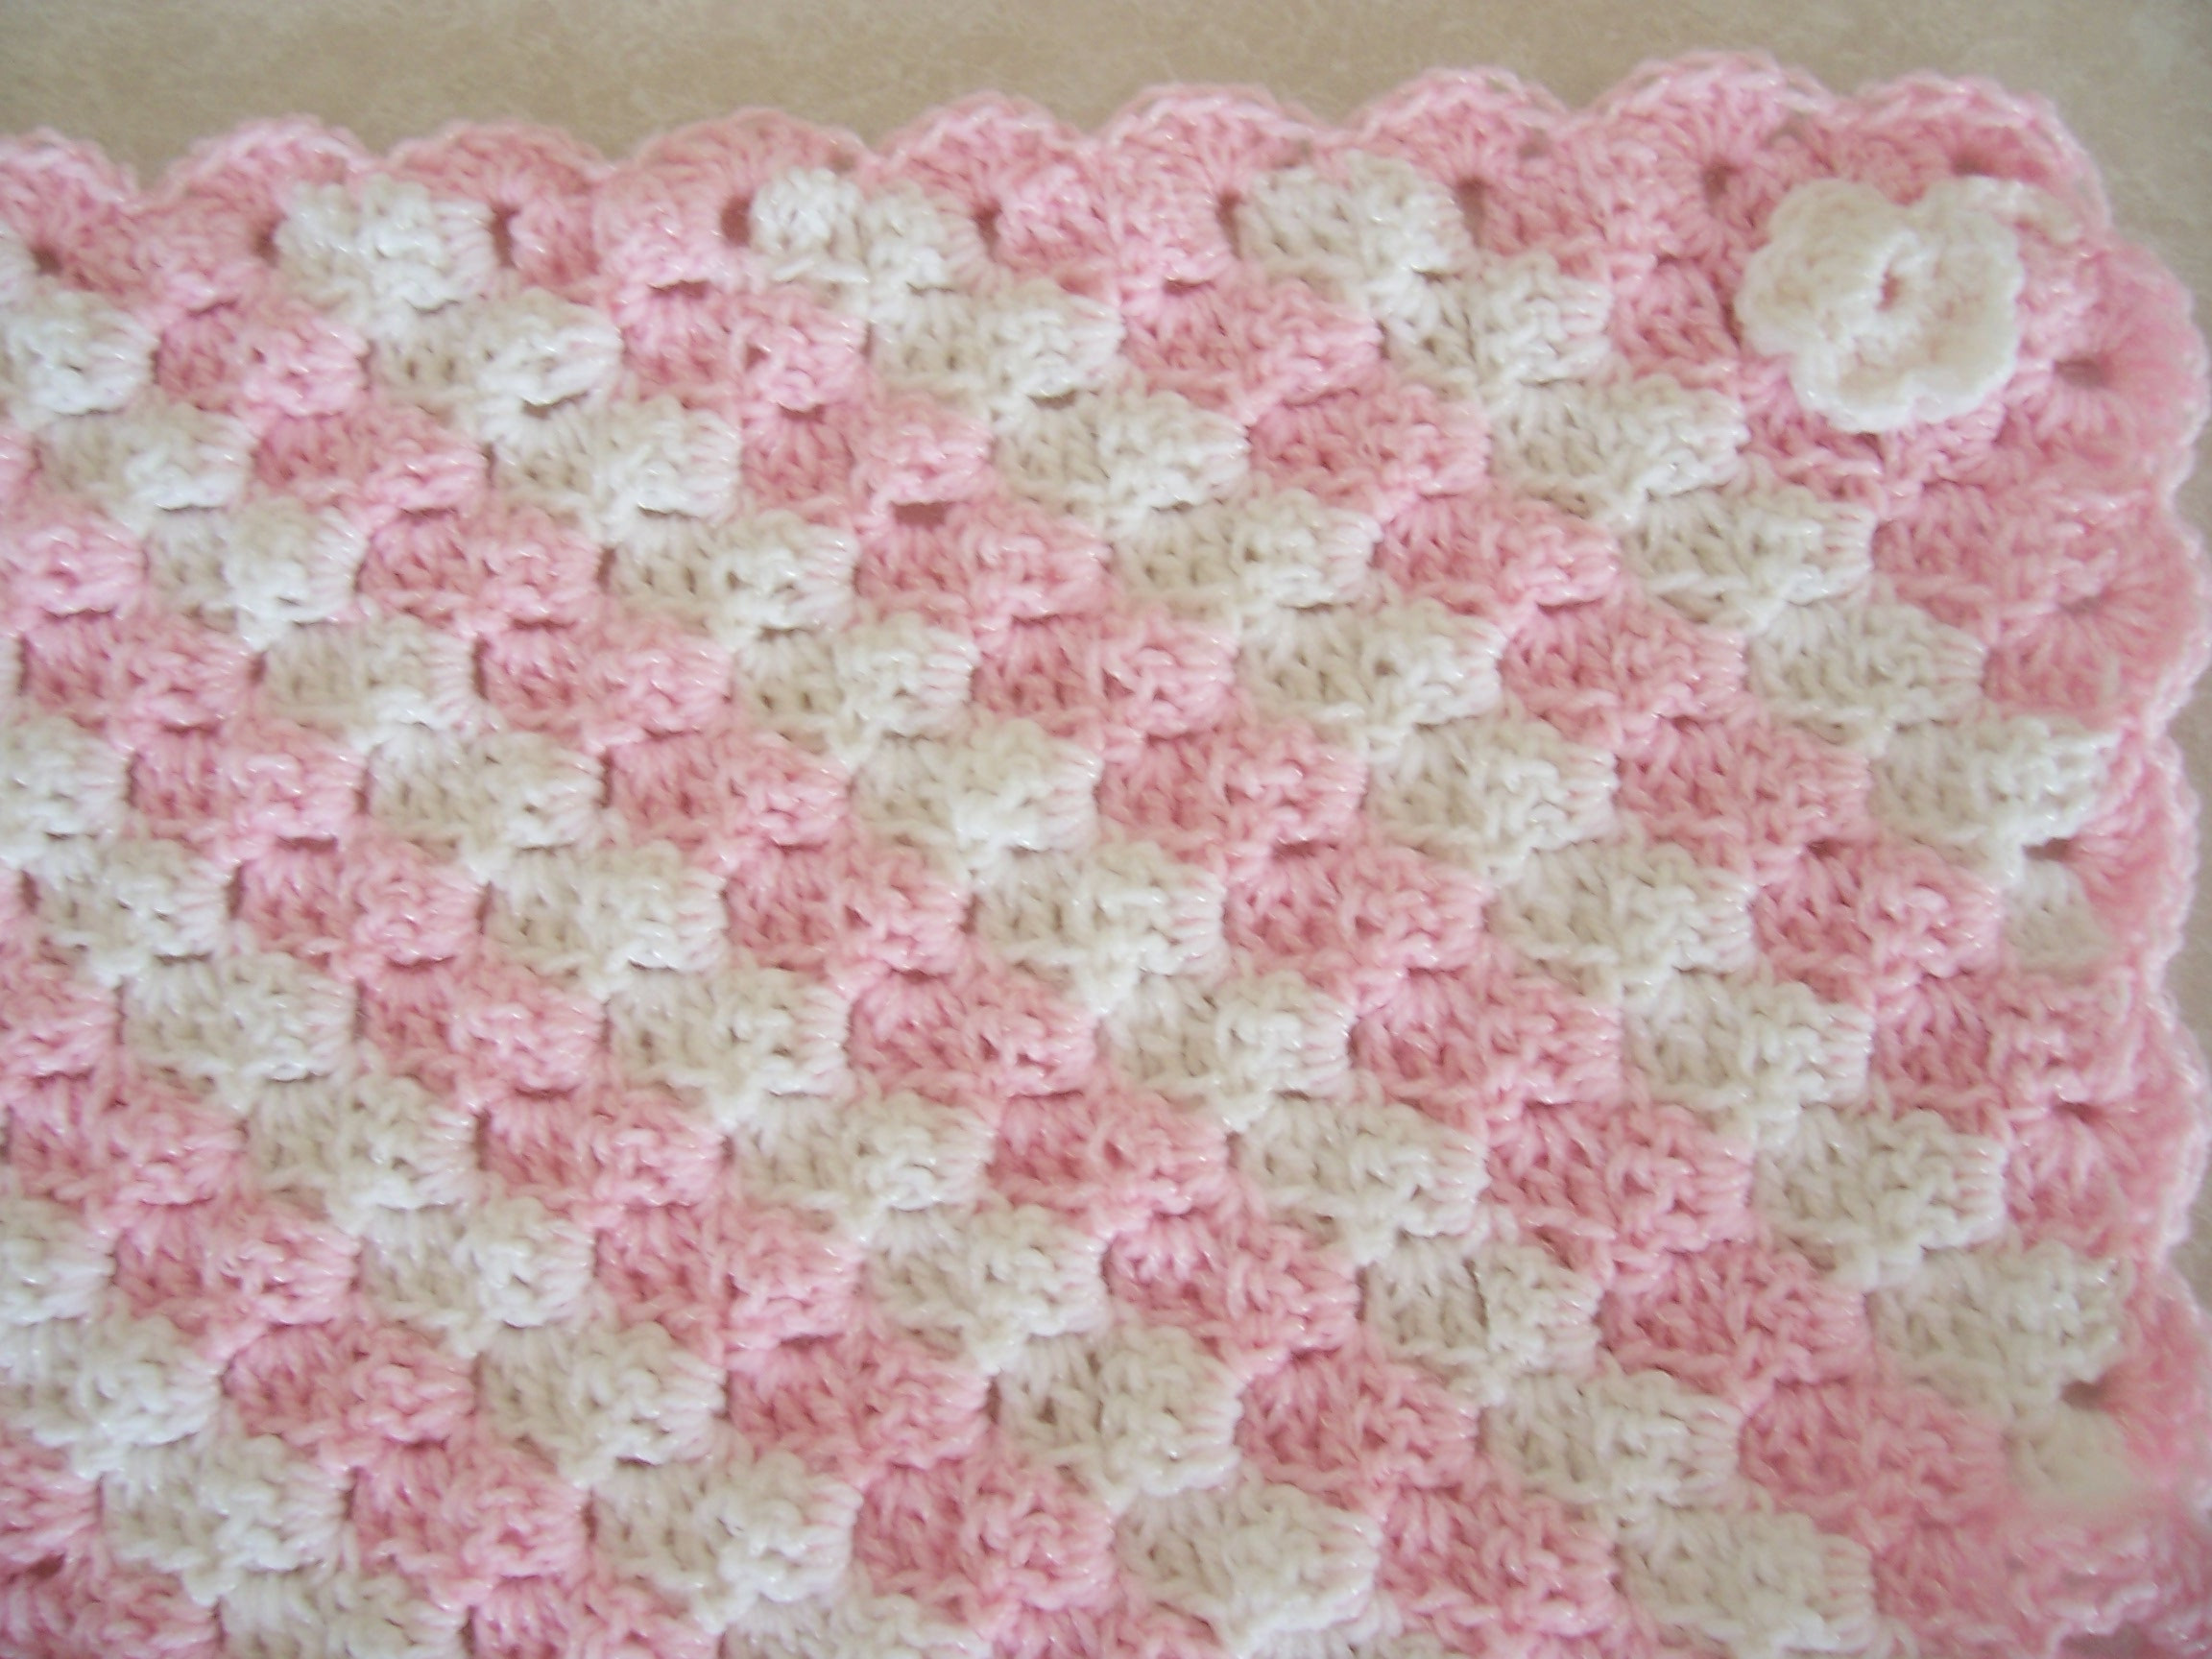 Crochet Patterns for Baby Blankets Awesome Custom Baby Blankets & Crochet Afghans Of Great 50 Photos Crochet Patterns for Baby Blankets